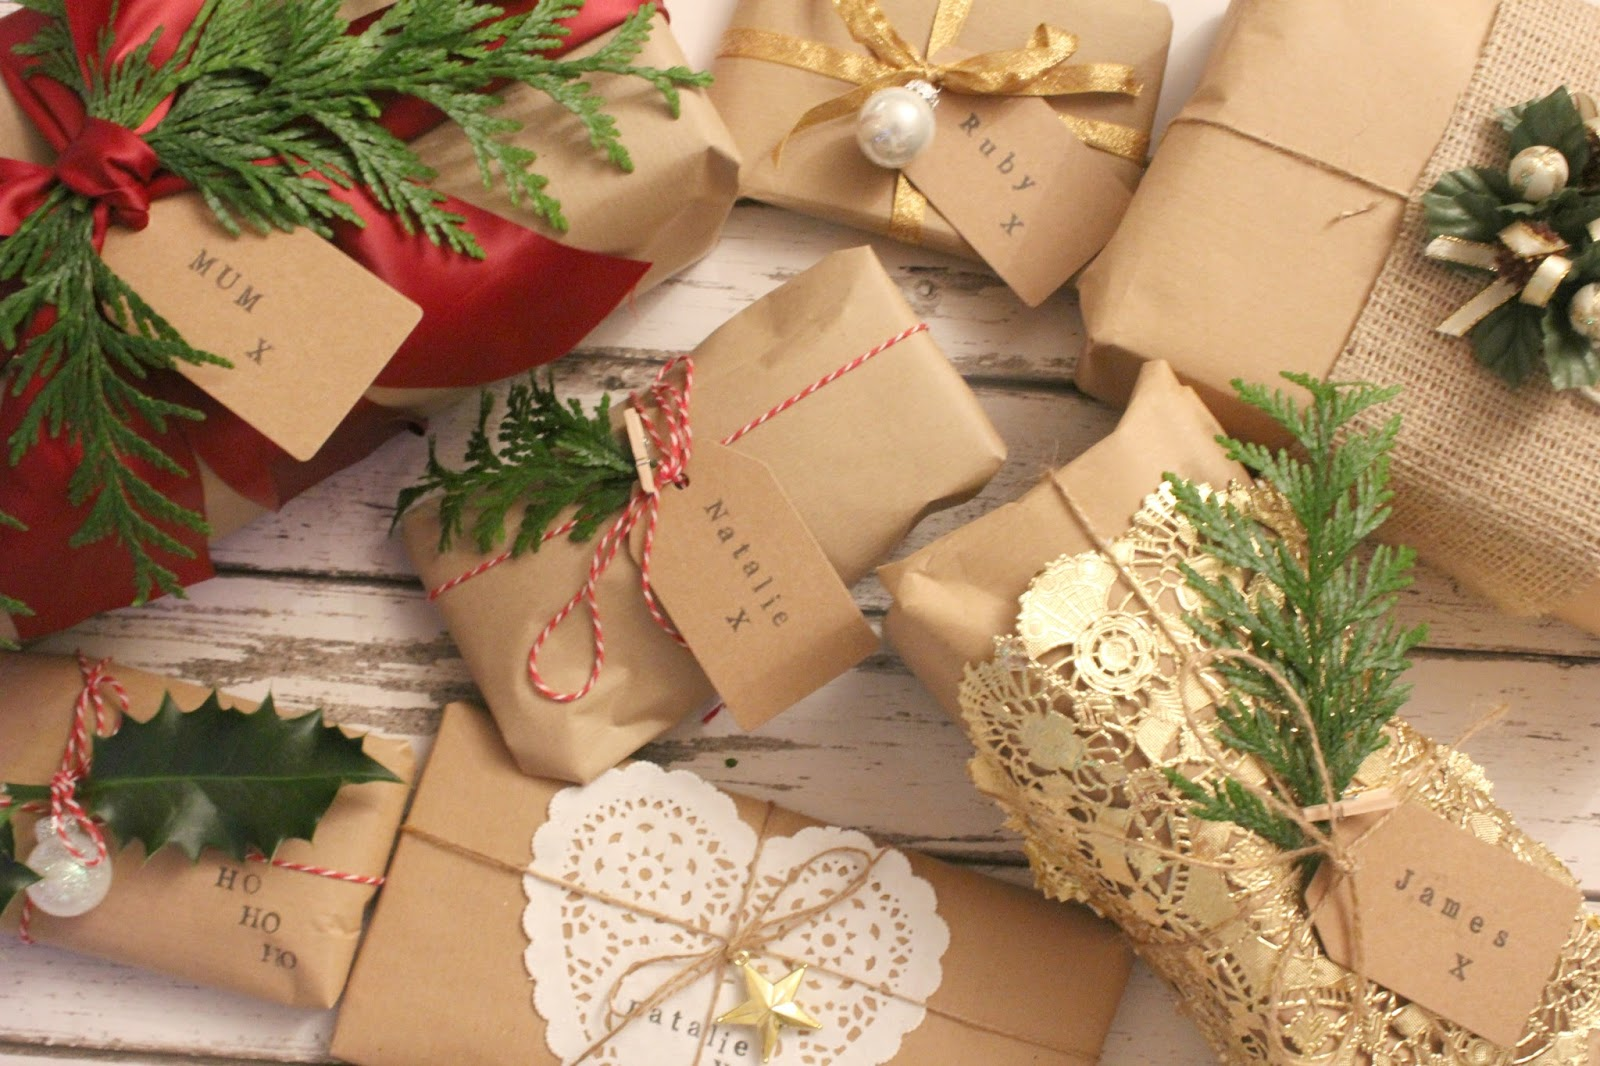 christmas gift wrapping ideas with brown paper sleek chic